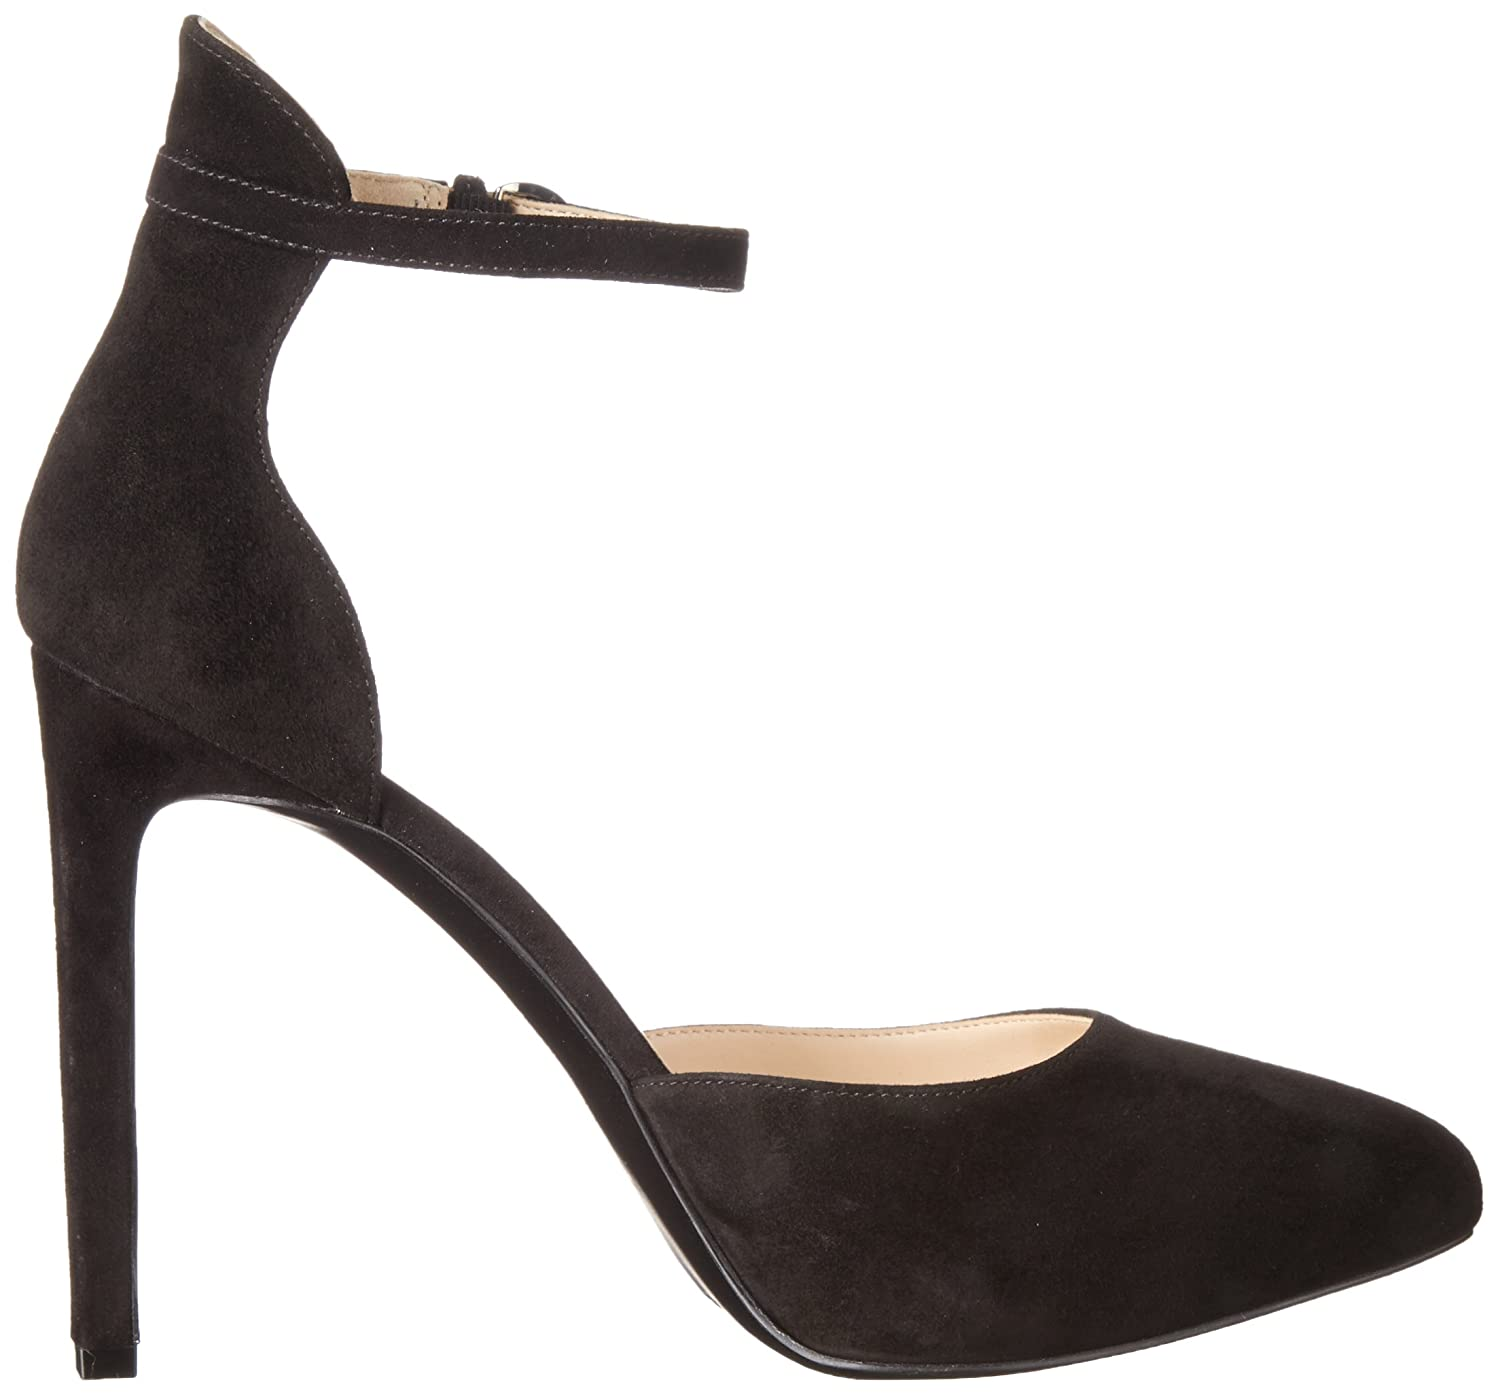 NINE WEST, Women, Shoes, nwladyfinger, black, 7: Amazon.co.uk: Business,  Industry & Science